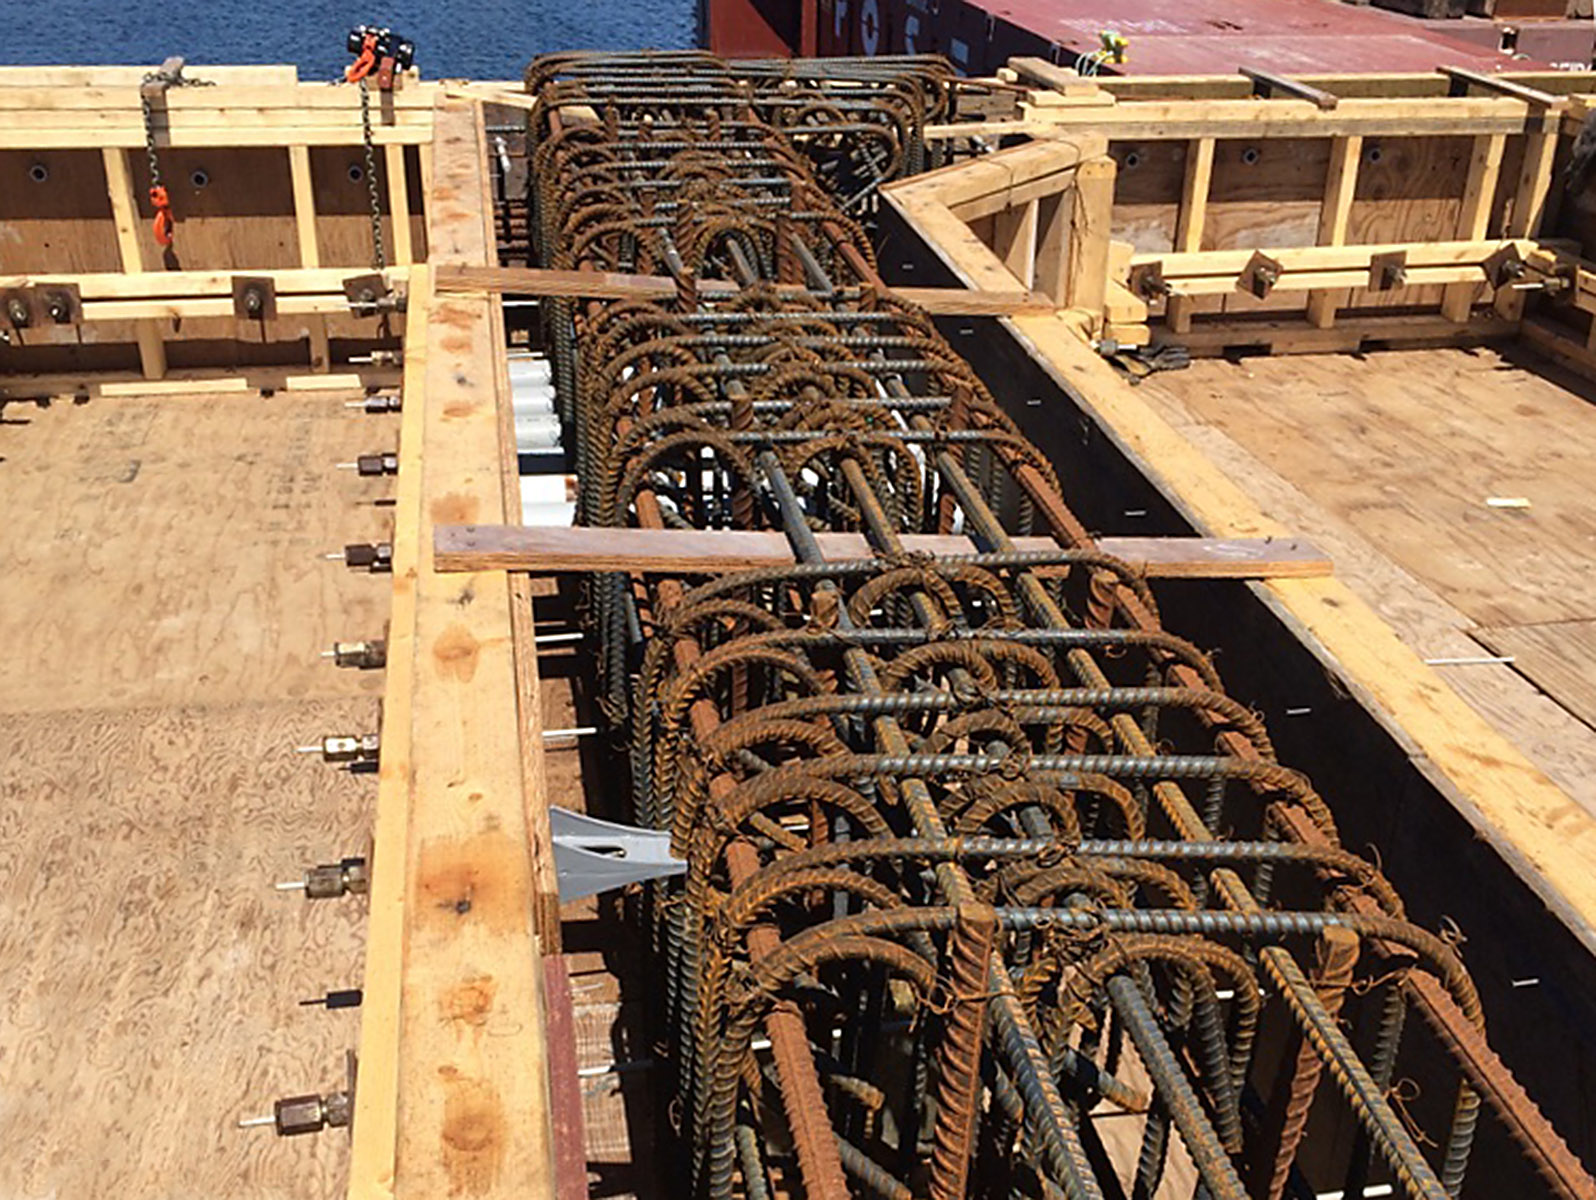 Steelmac – Nova Scotia Rebar, Steel & Wearparts